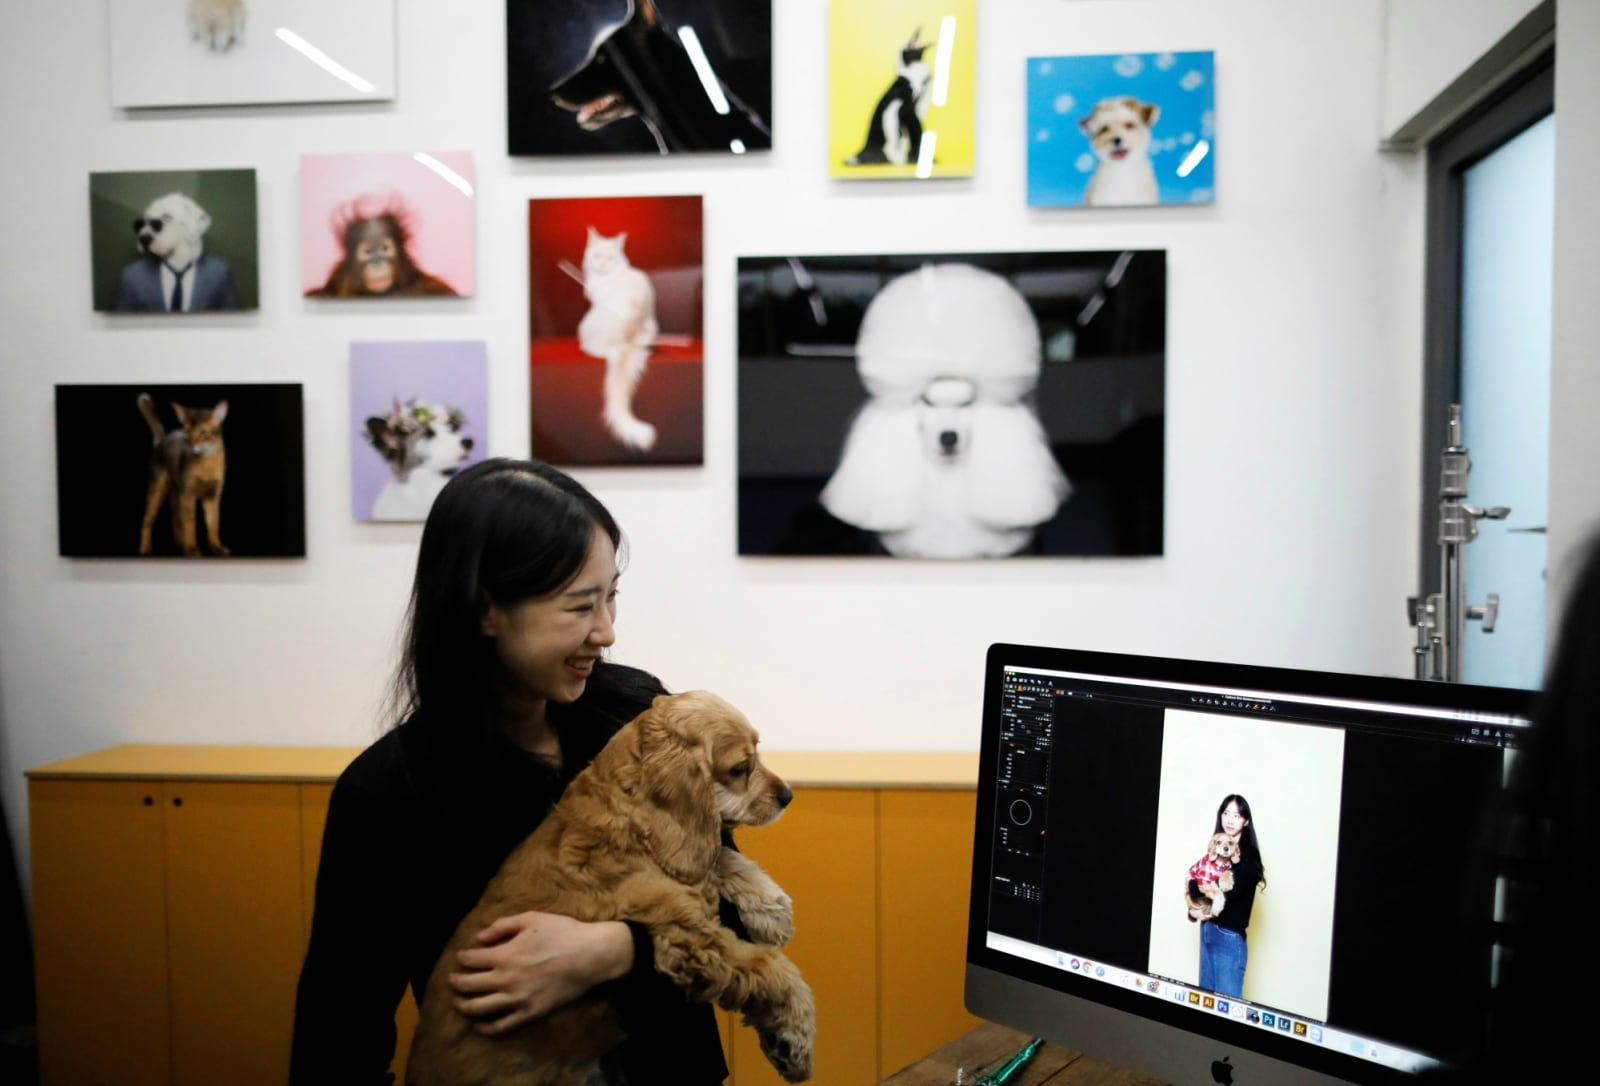 A woman looks at pictures of her and her pet dog at a pet studio in Seoul, South Korea, January 17, 2019. REUTERS/Kim Hong-Ji